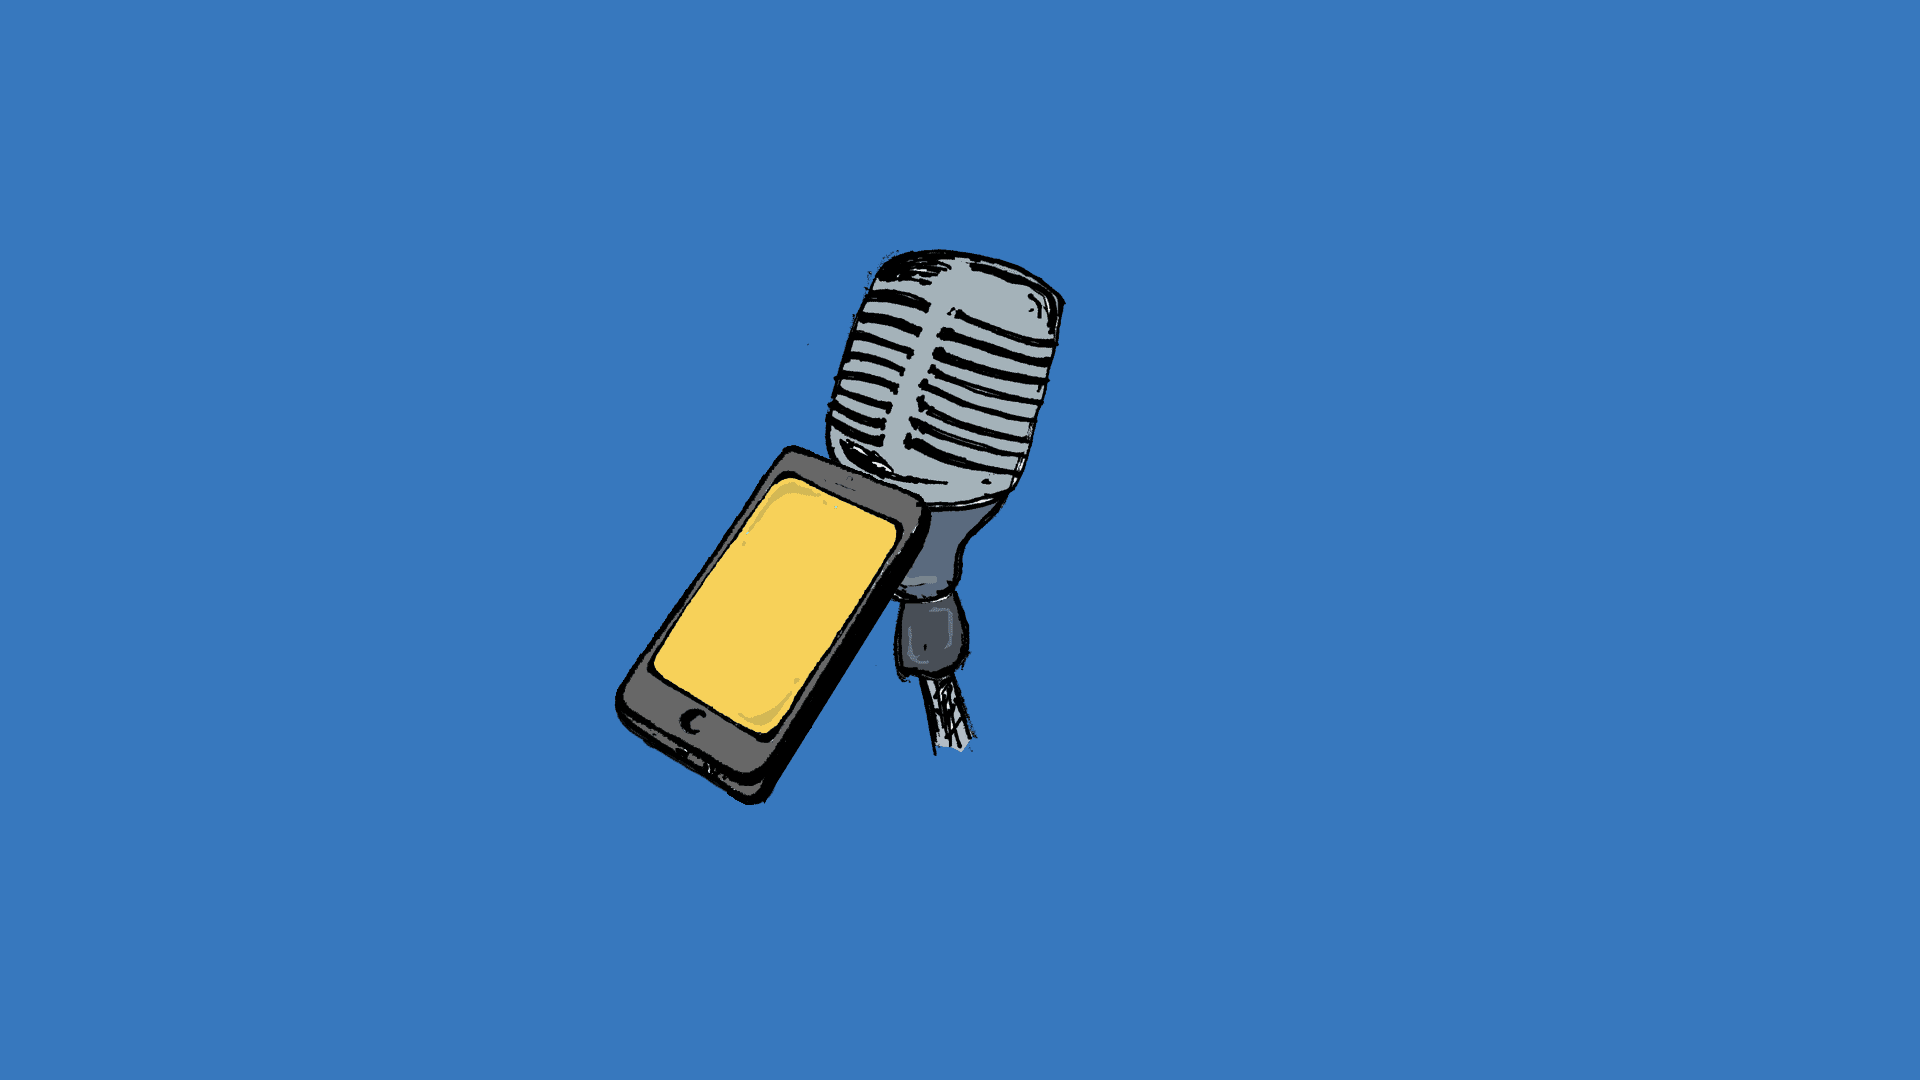 5 Reasons to Pilot Student Podcasting Projects